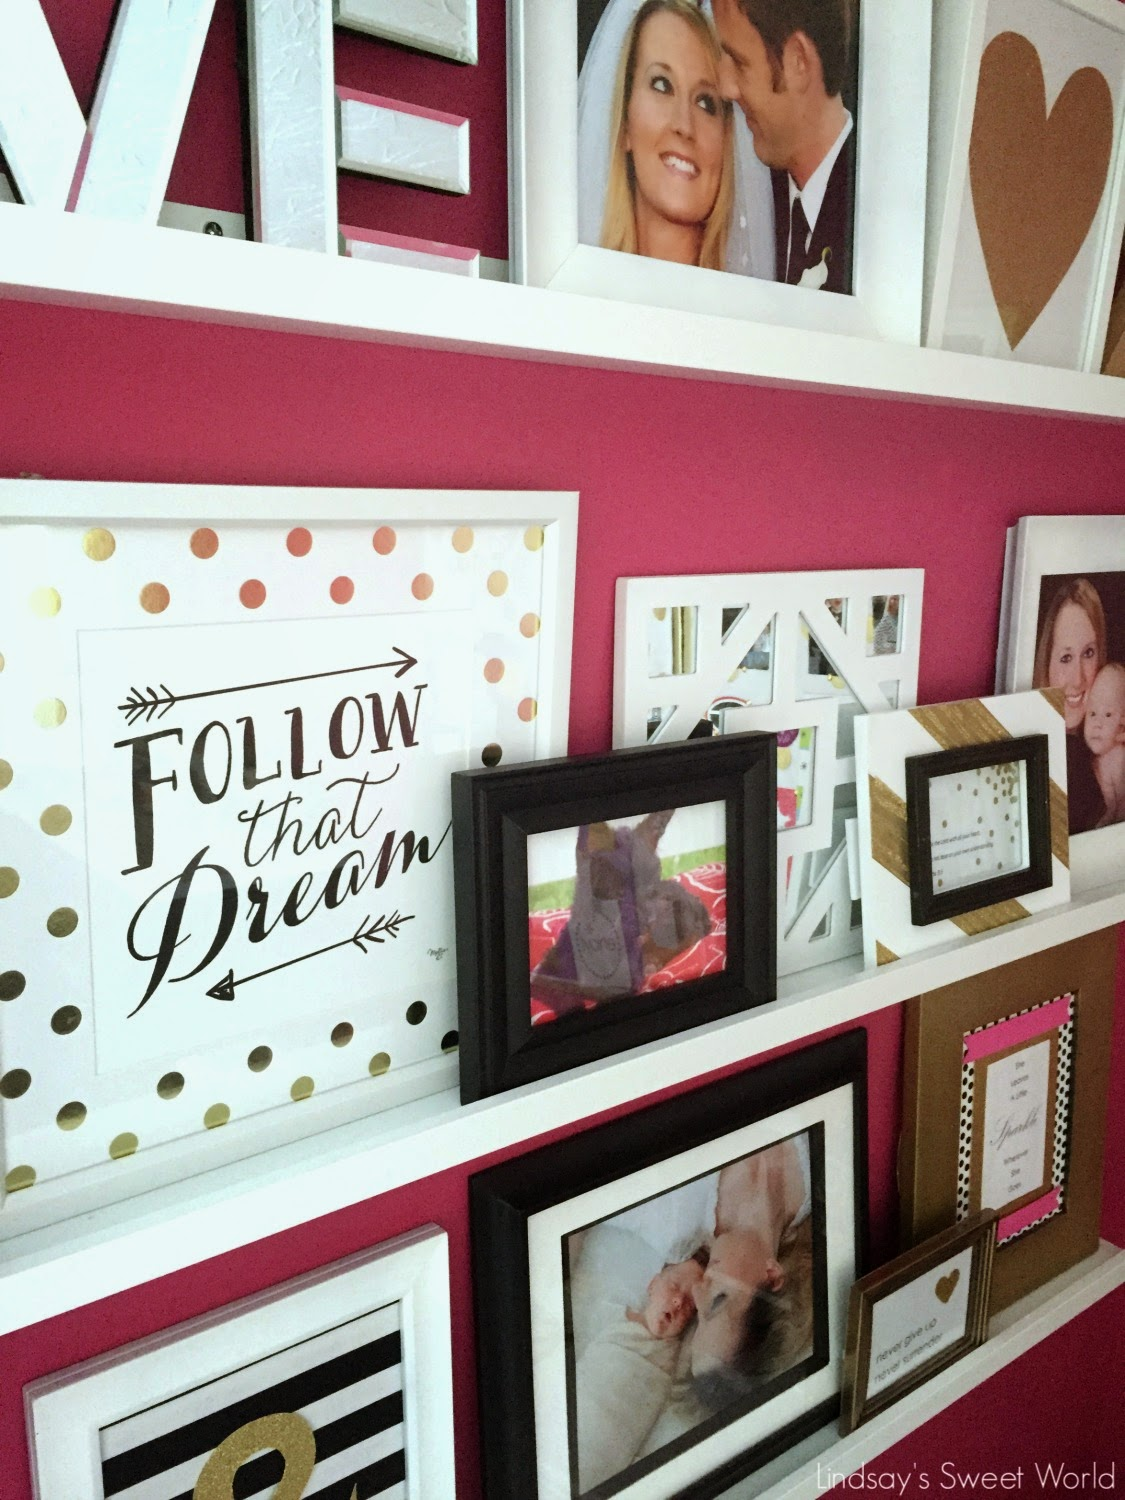 Lindsays sweet world diy timeline gallery wall tell me what were the most significant events in your life that you would include in your timeline gallery wall jeuxipadfo Gallery